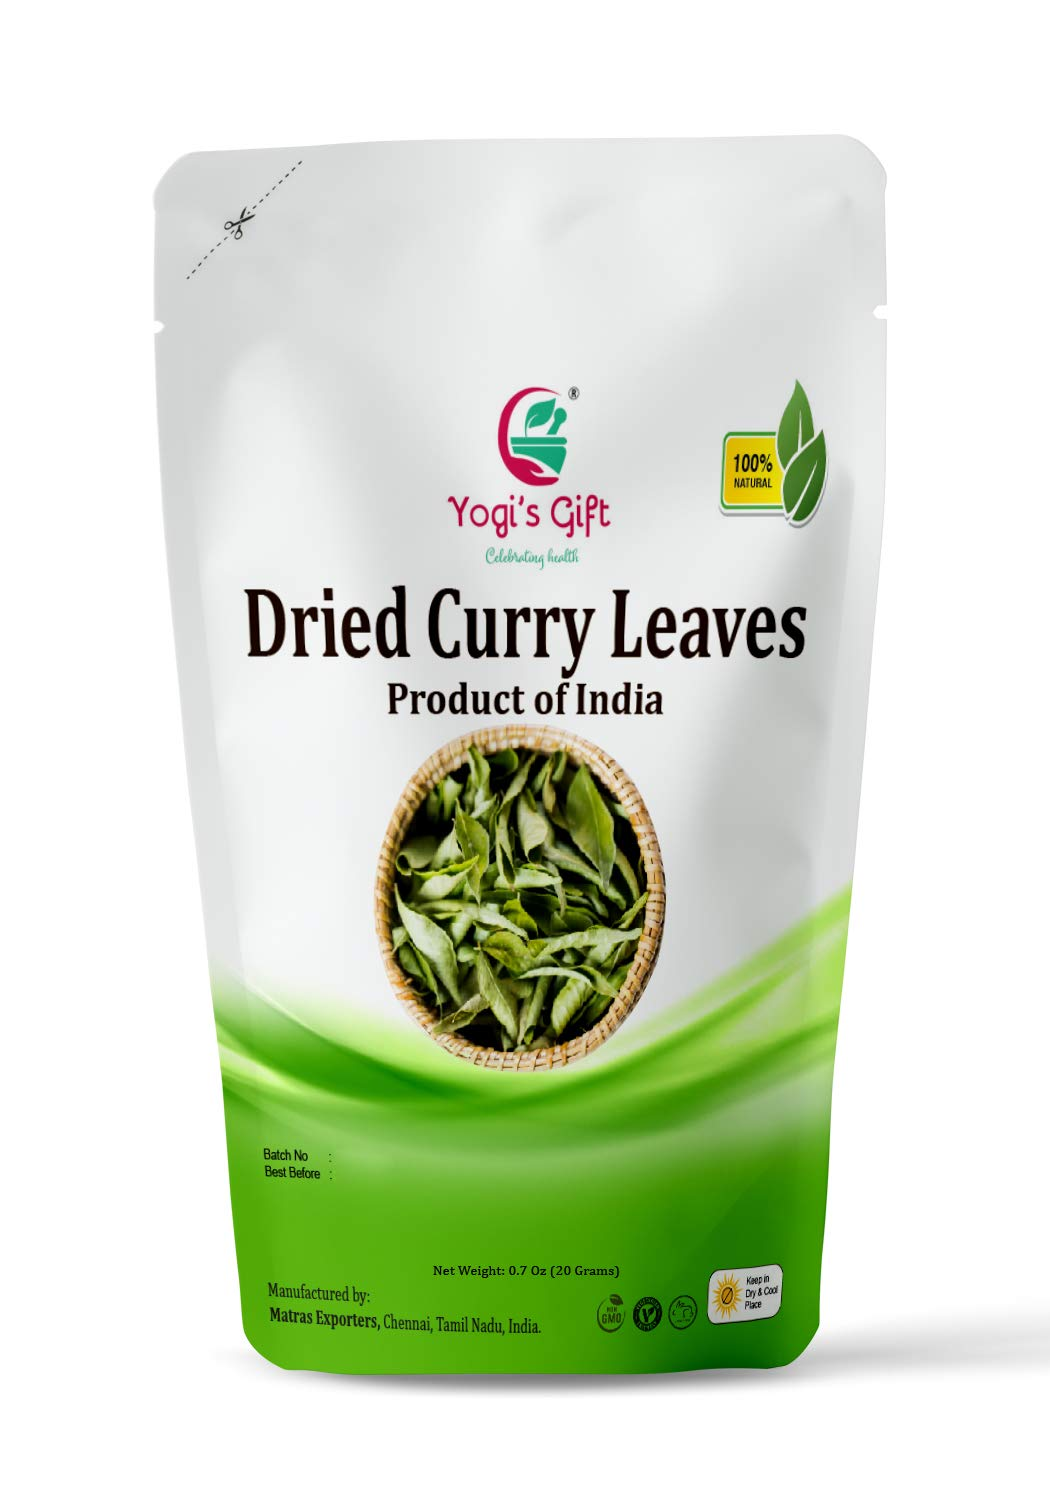 Yogis Gift Indian Dried Curry leaves 0.7 oz. | Aromatic, Flavorsome of fresh leaves | Herb to flavor food